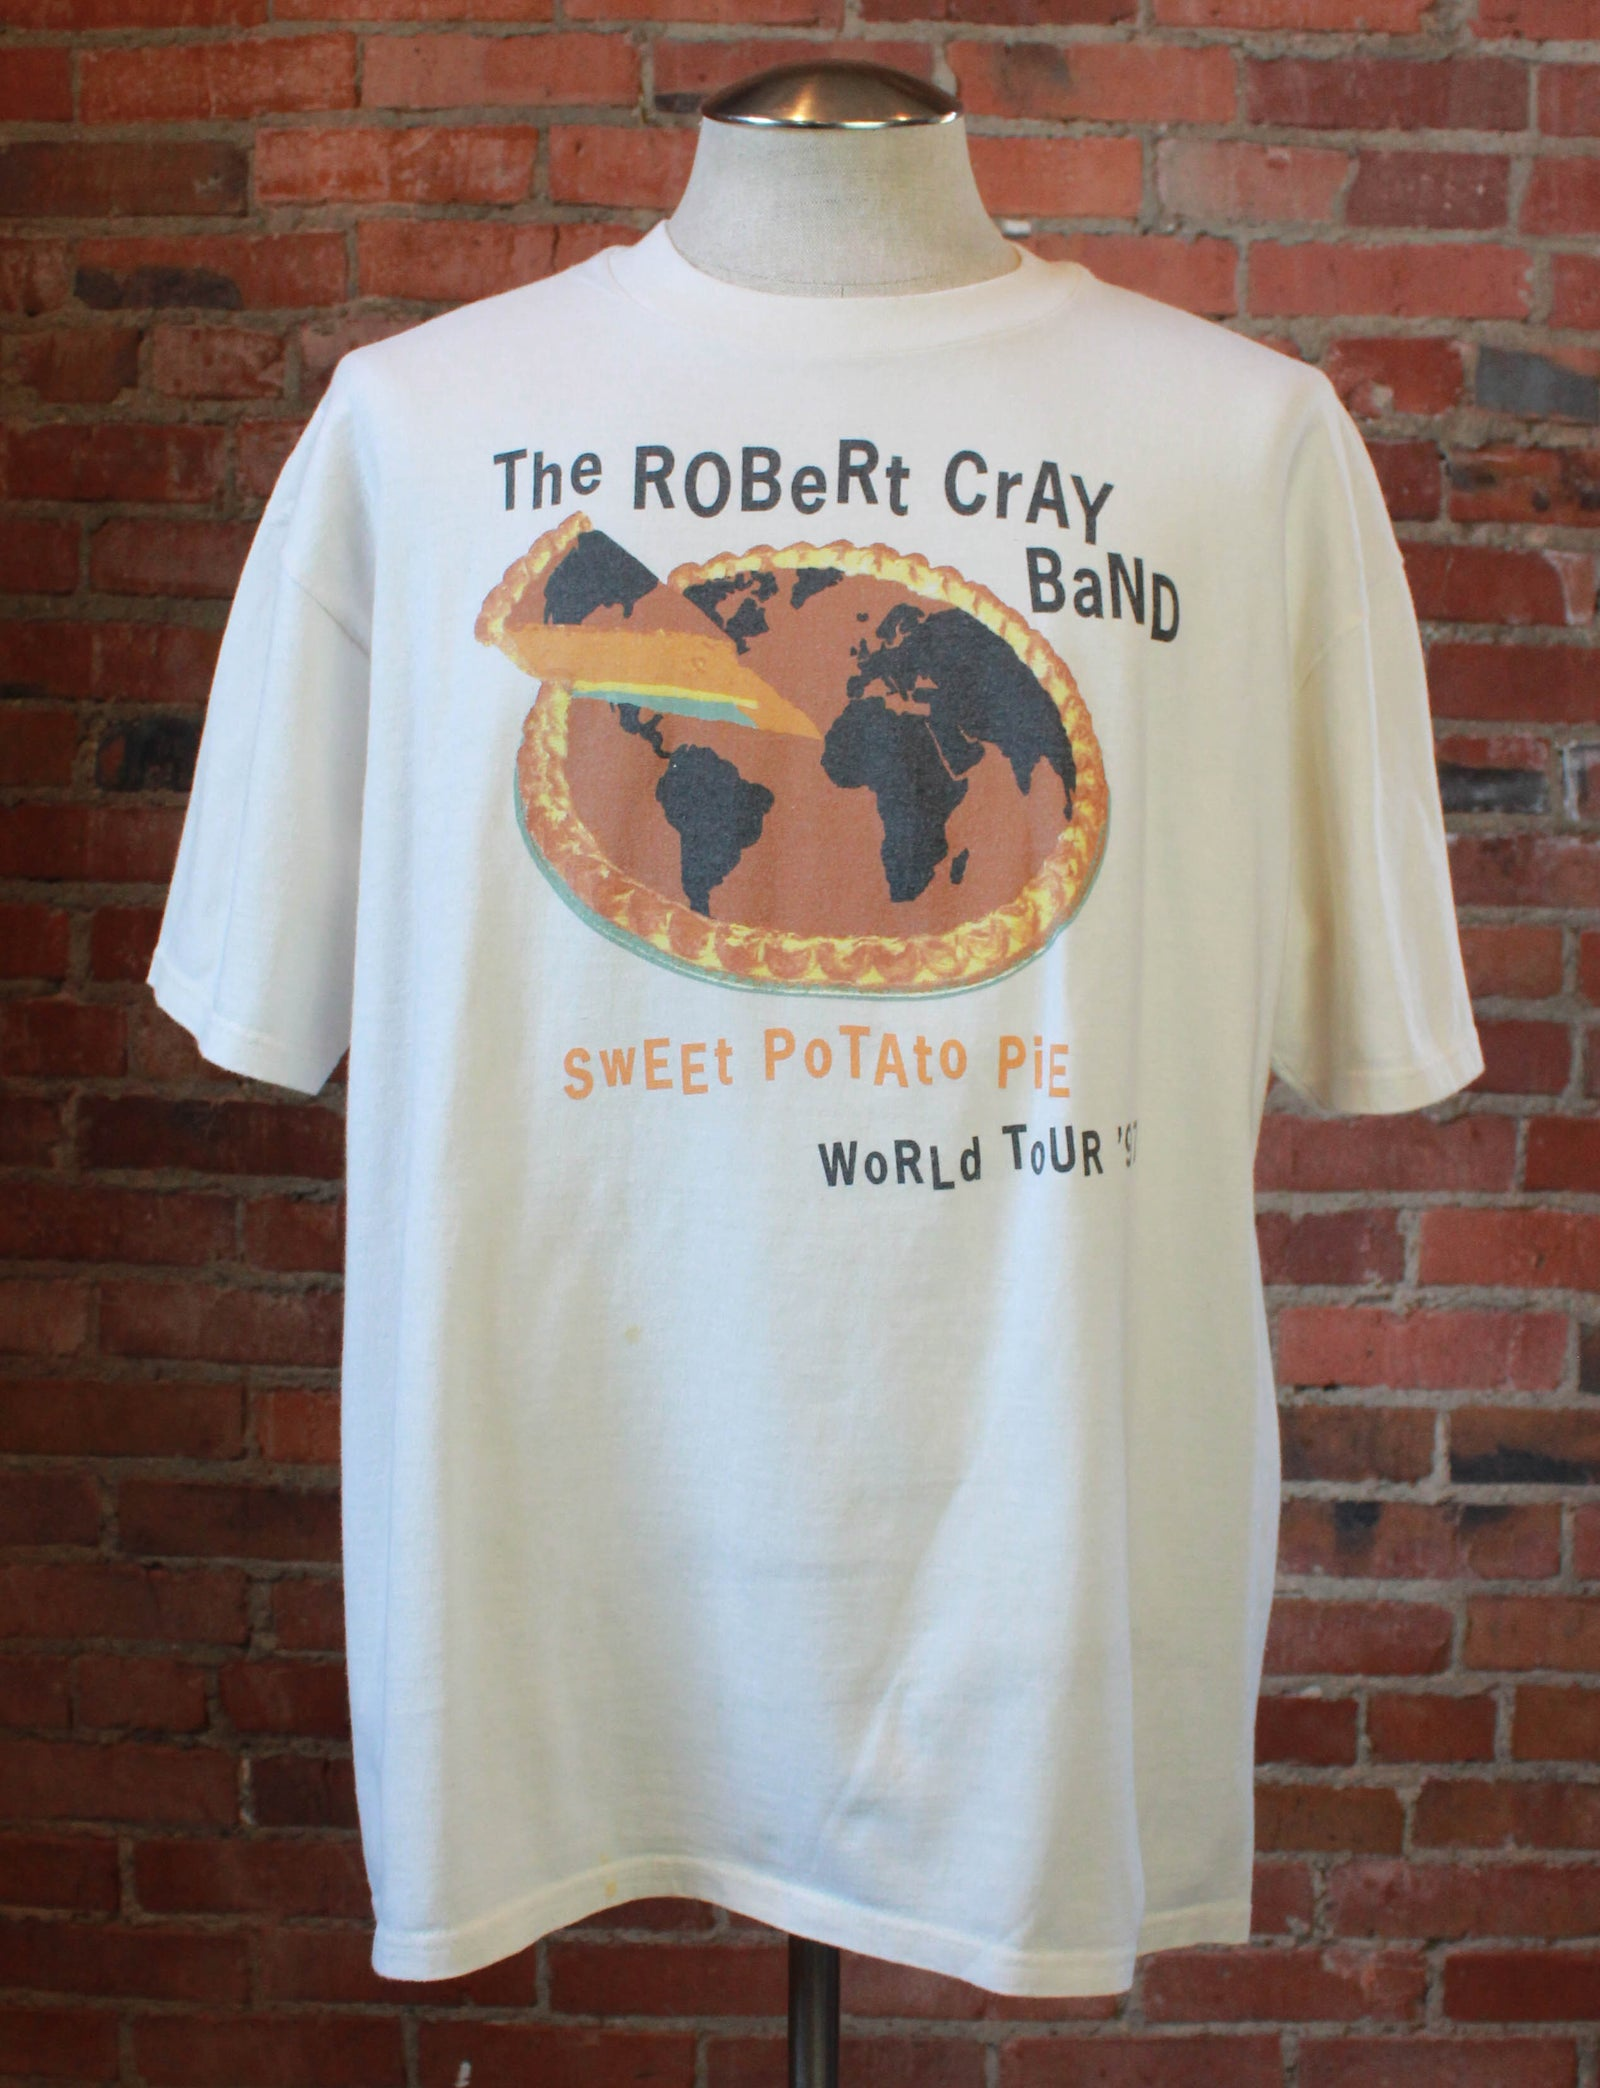 Vintage 1997 Robert Cray Band Concert T Shirt Sweet Potato Pie World Tour White Unisex XL